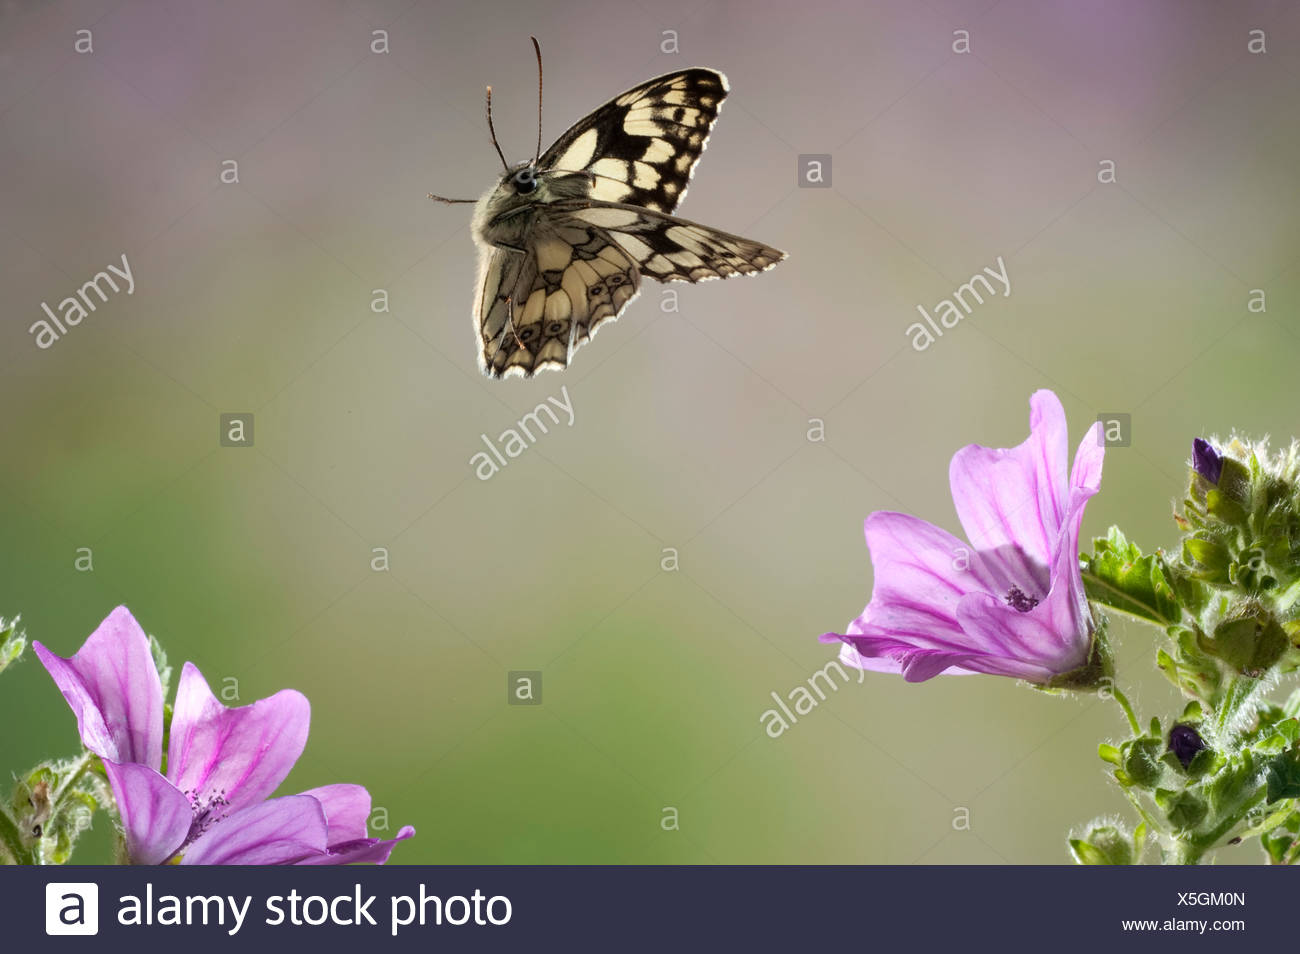 Marbled White Butterfly Melanargia galathea In flight free flying High Speed Photographic Technique - Stock Image